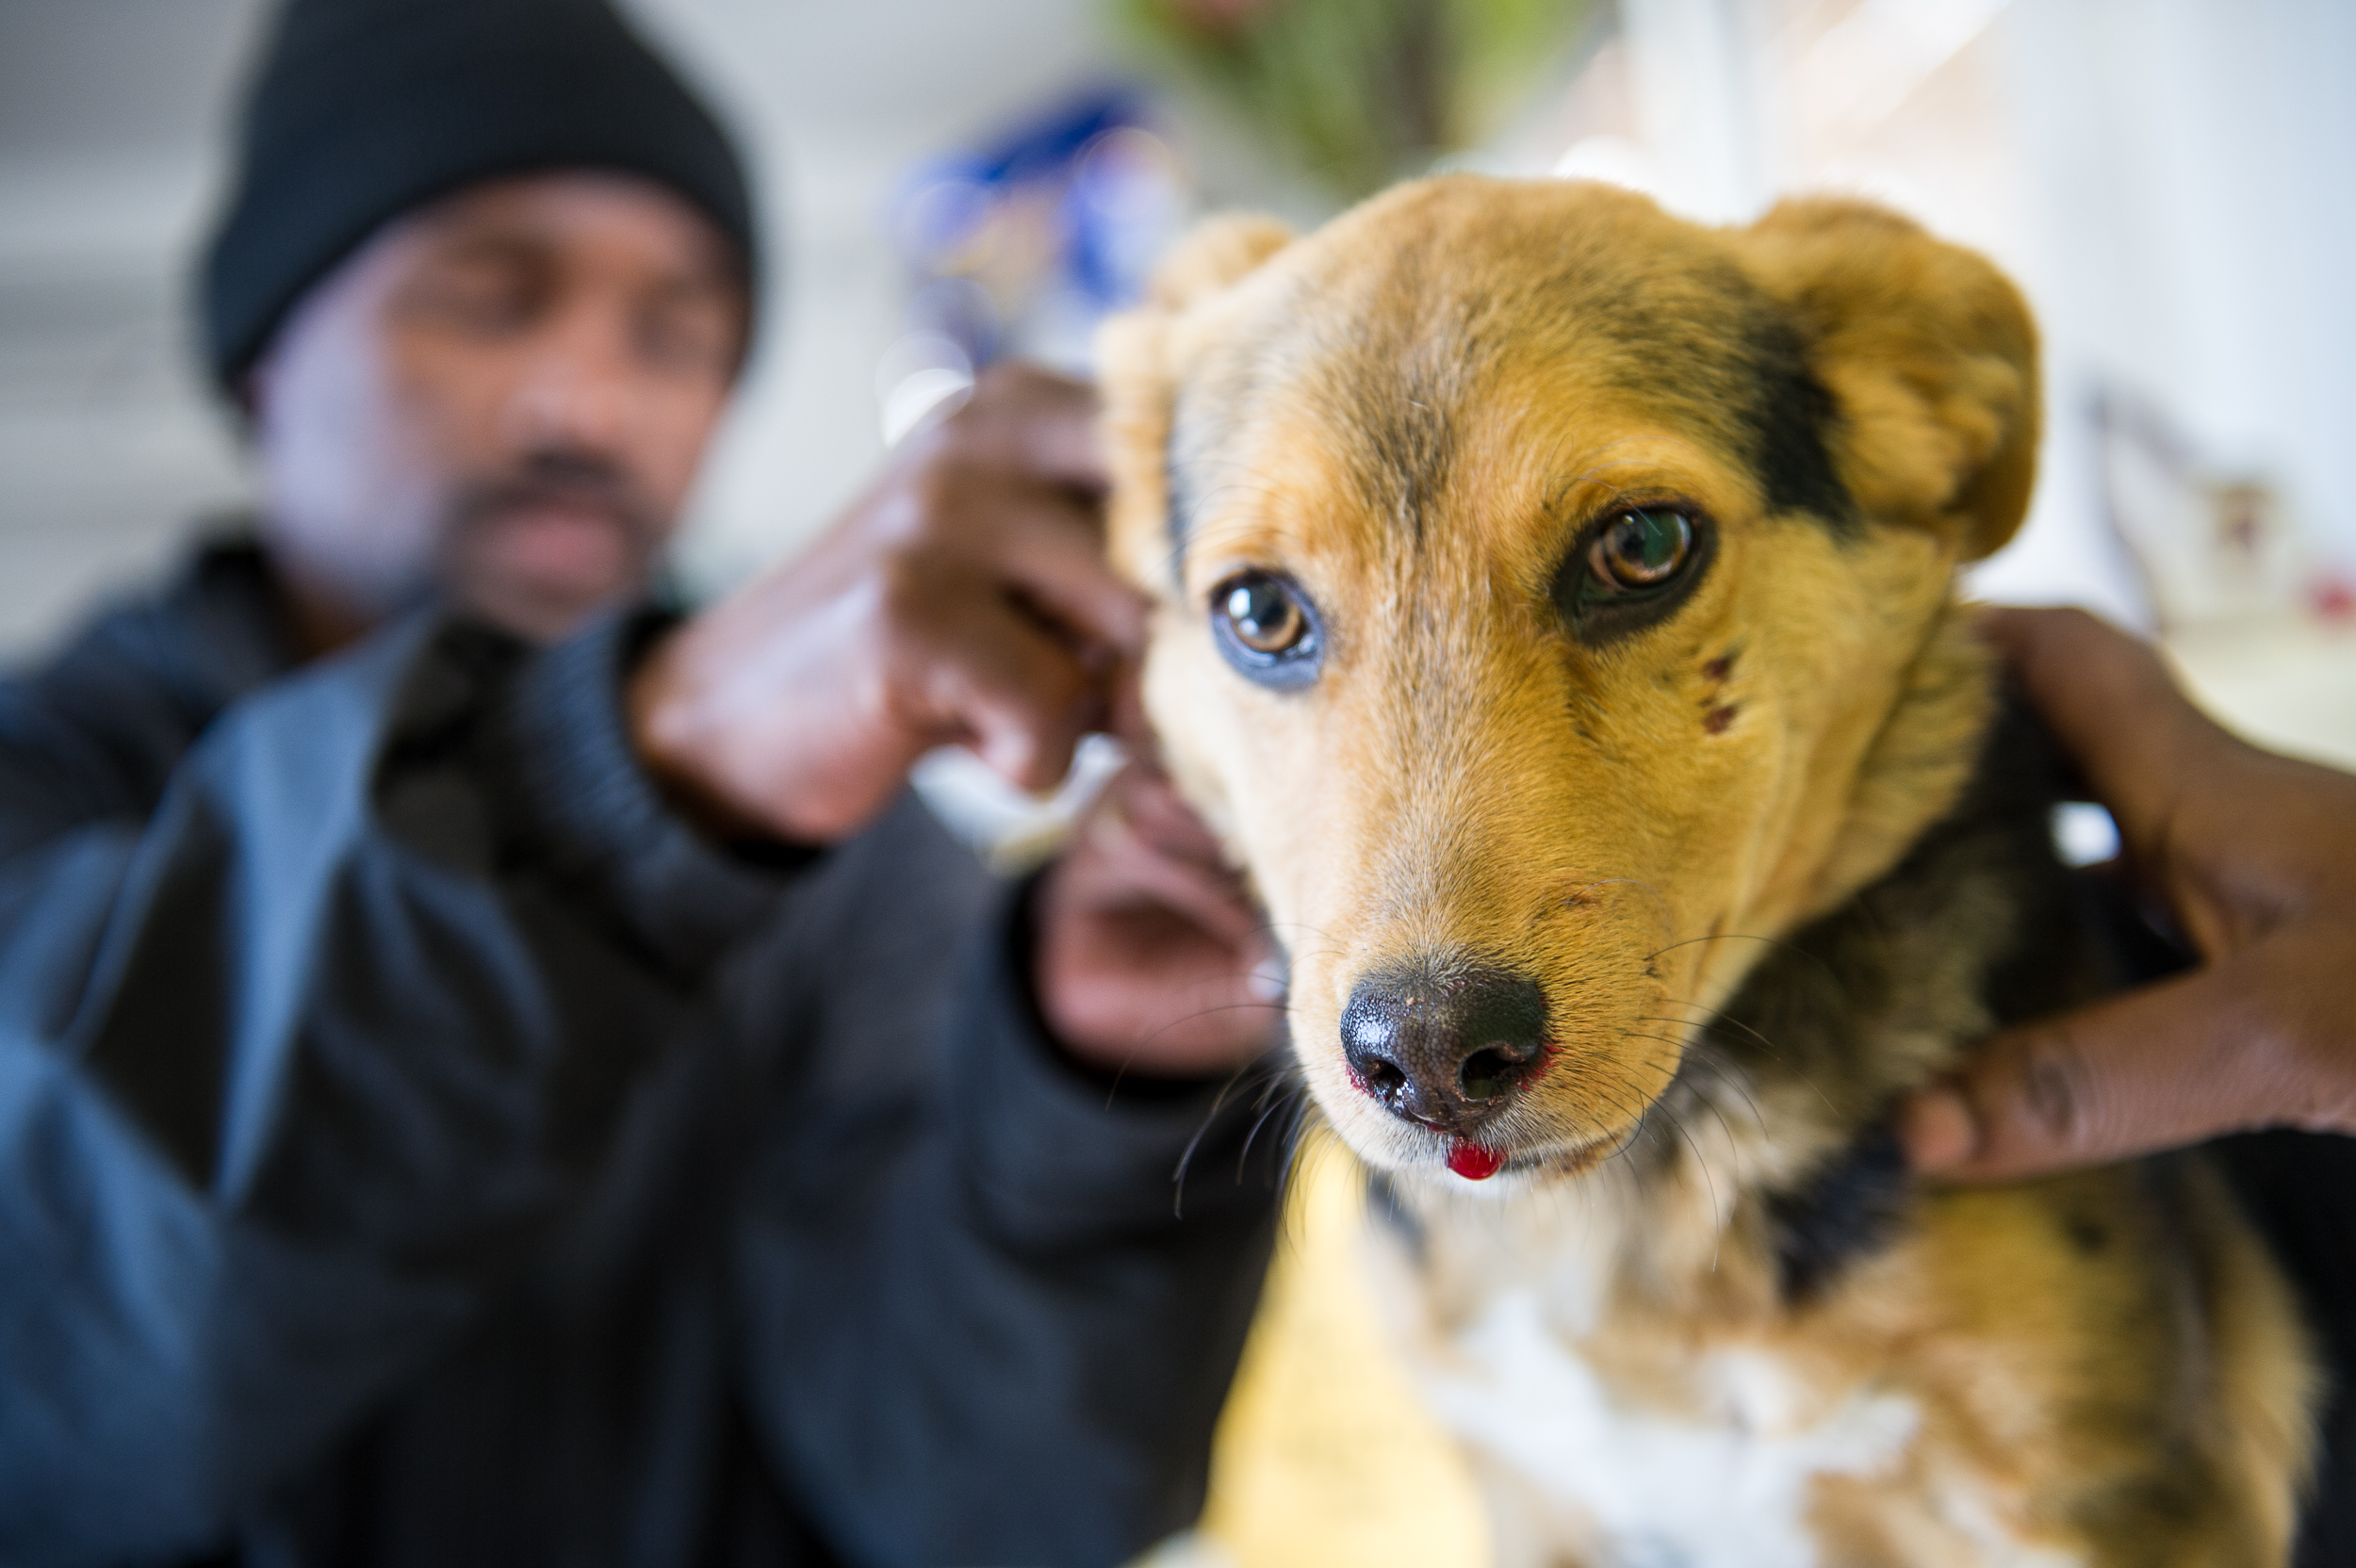 Promise Tshayisa, one of the clinic's animal care workers, begins treatment on a puppy that was rushed to Mdzananda after being hit by a car. Motor vehicle accidents are the single largest source of injury and death to pets in Khayelitsha.